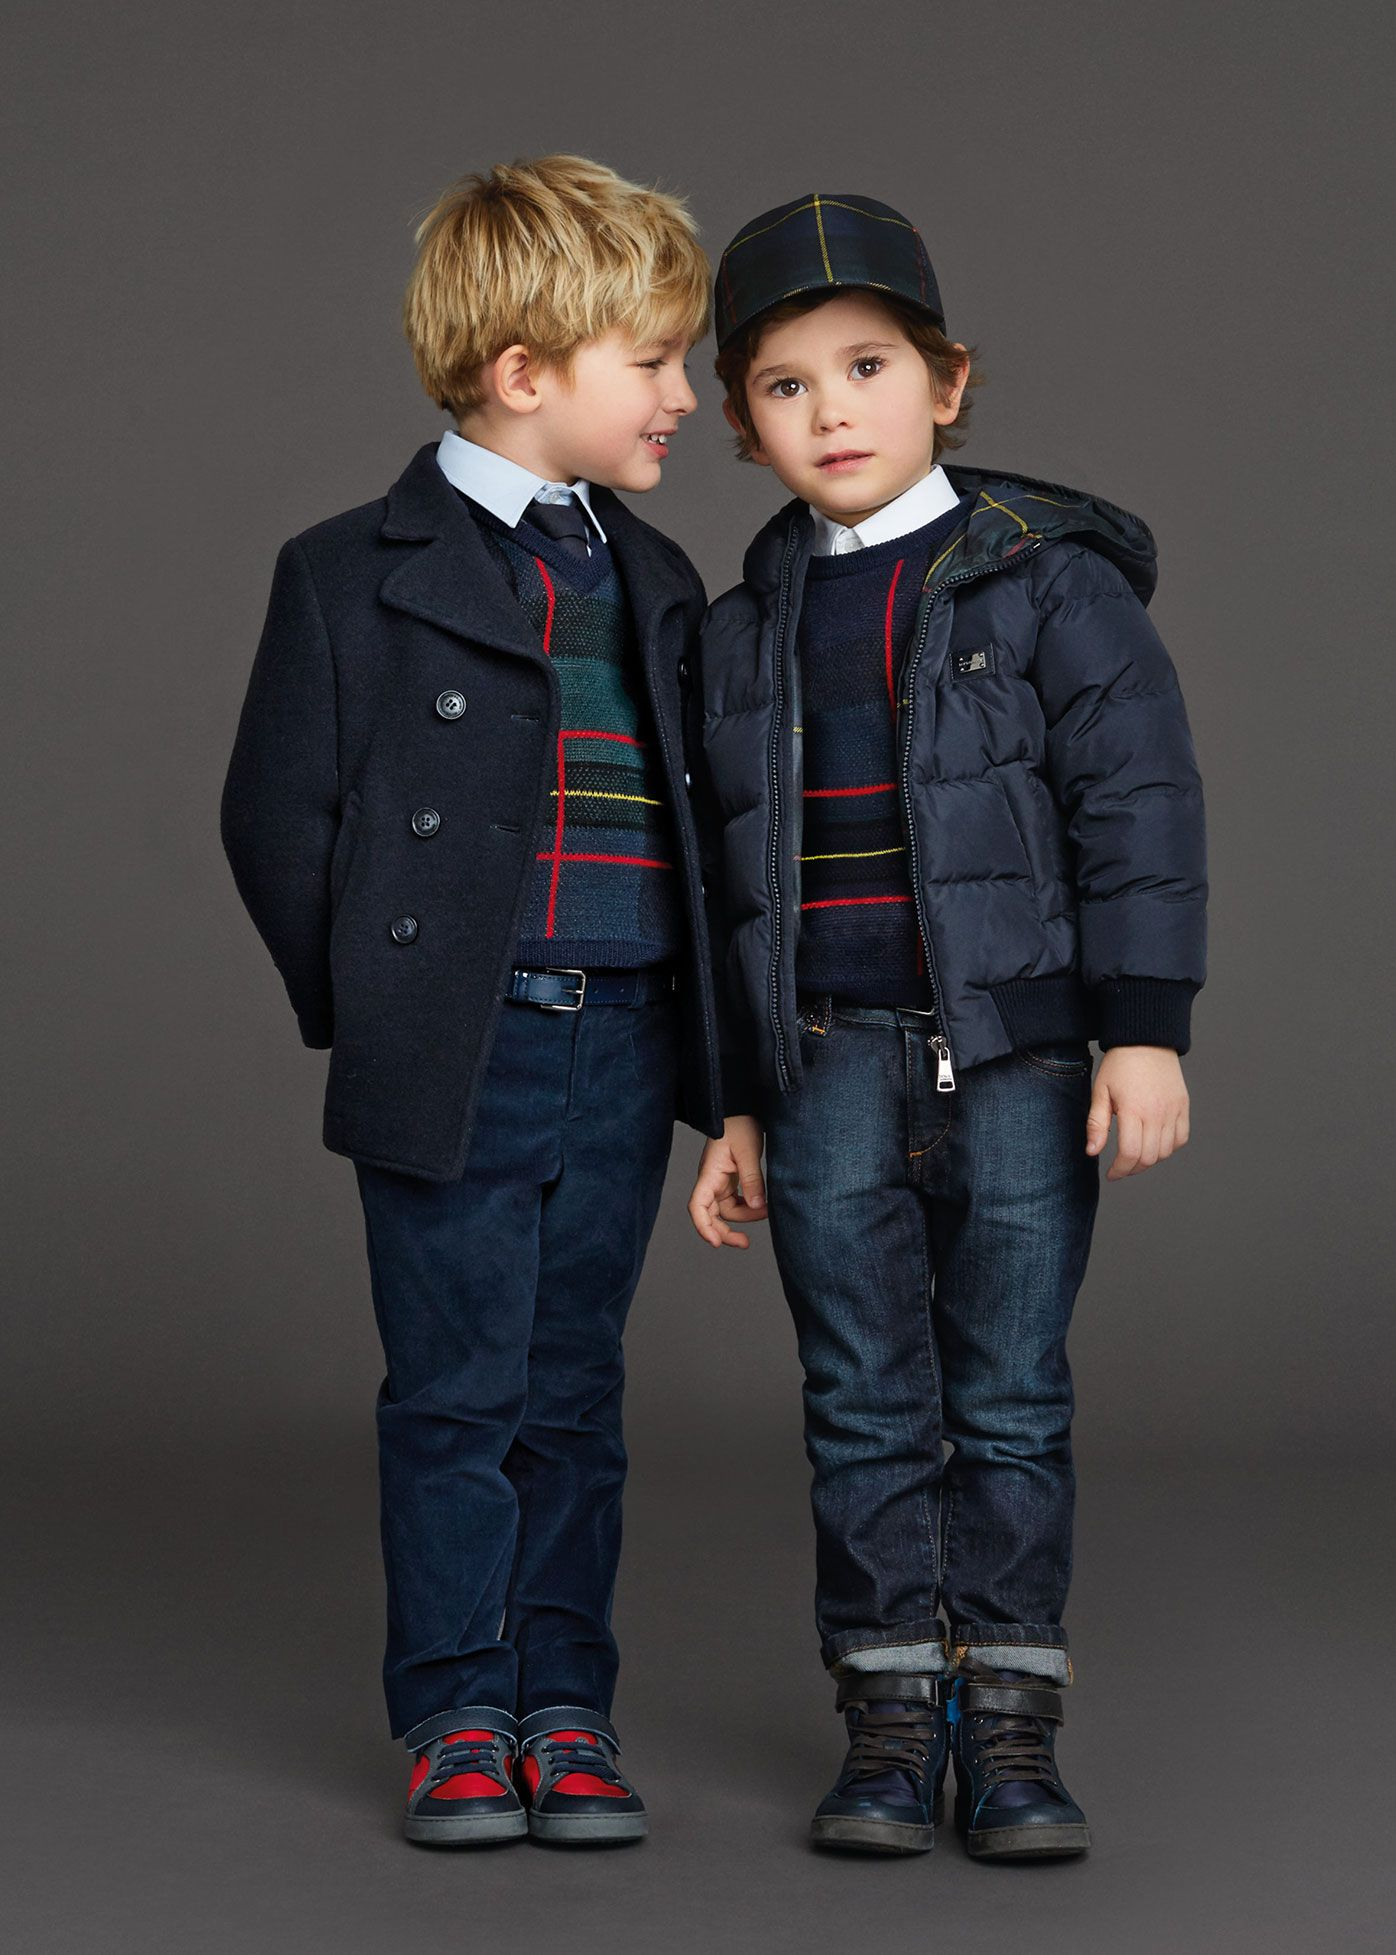 wonderful winter outfit for boys 11